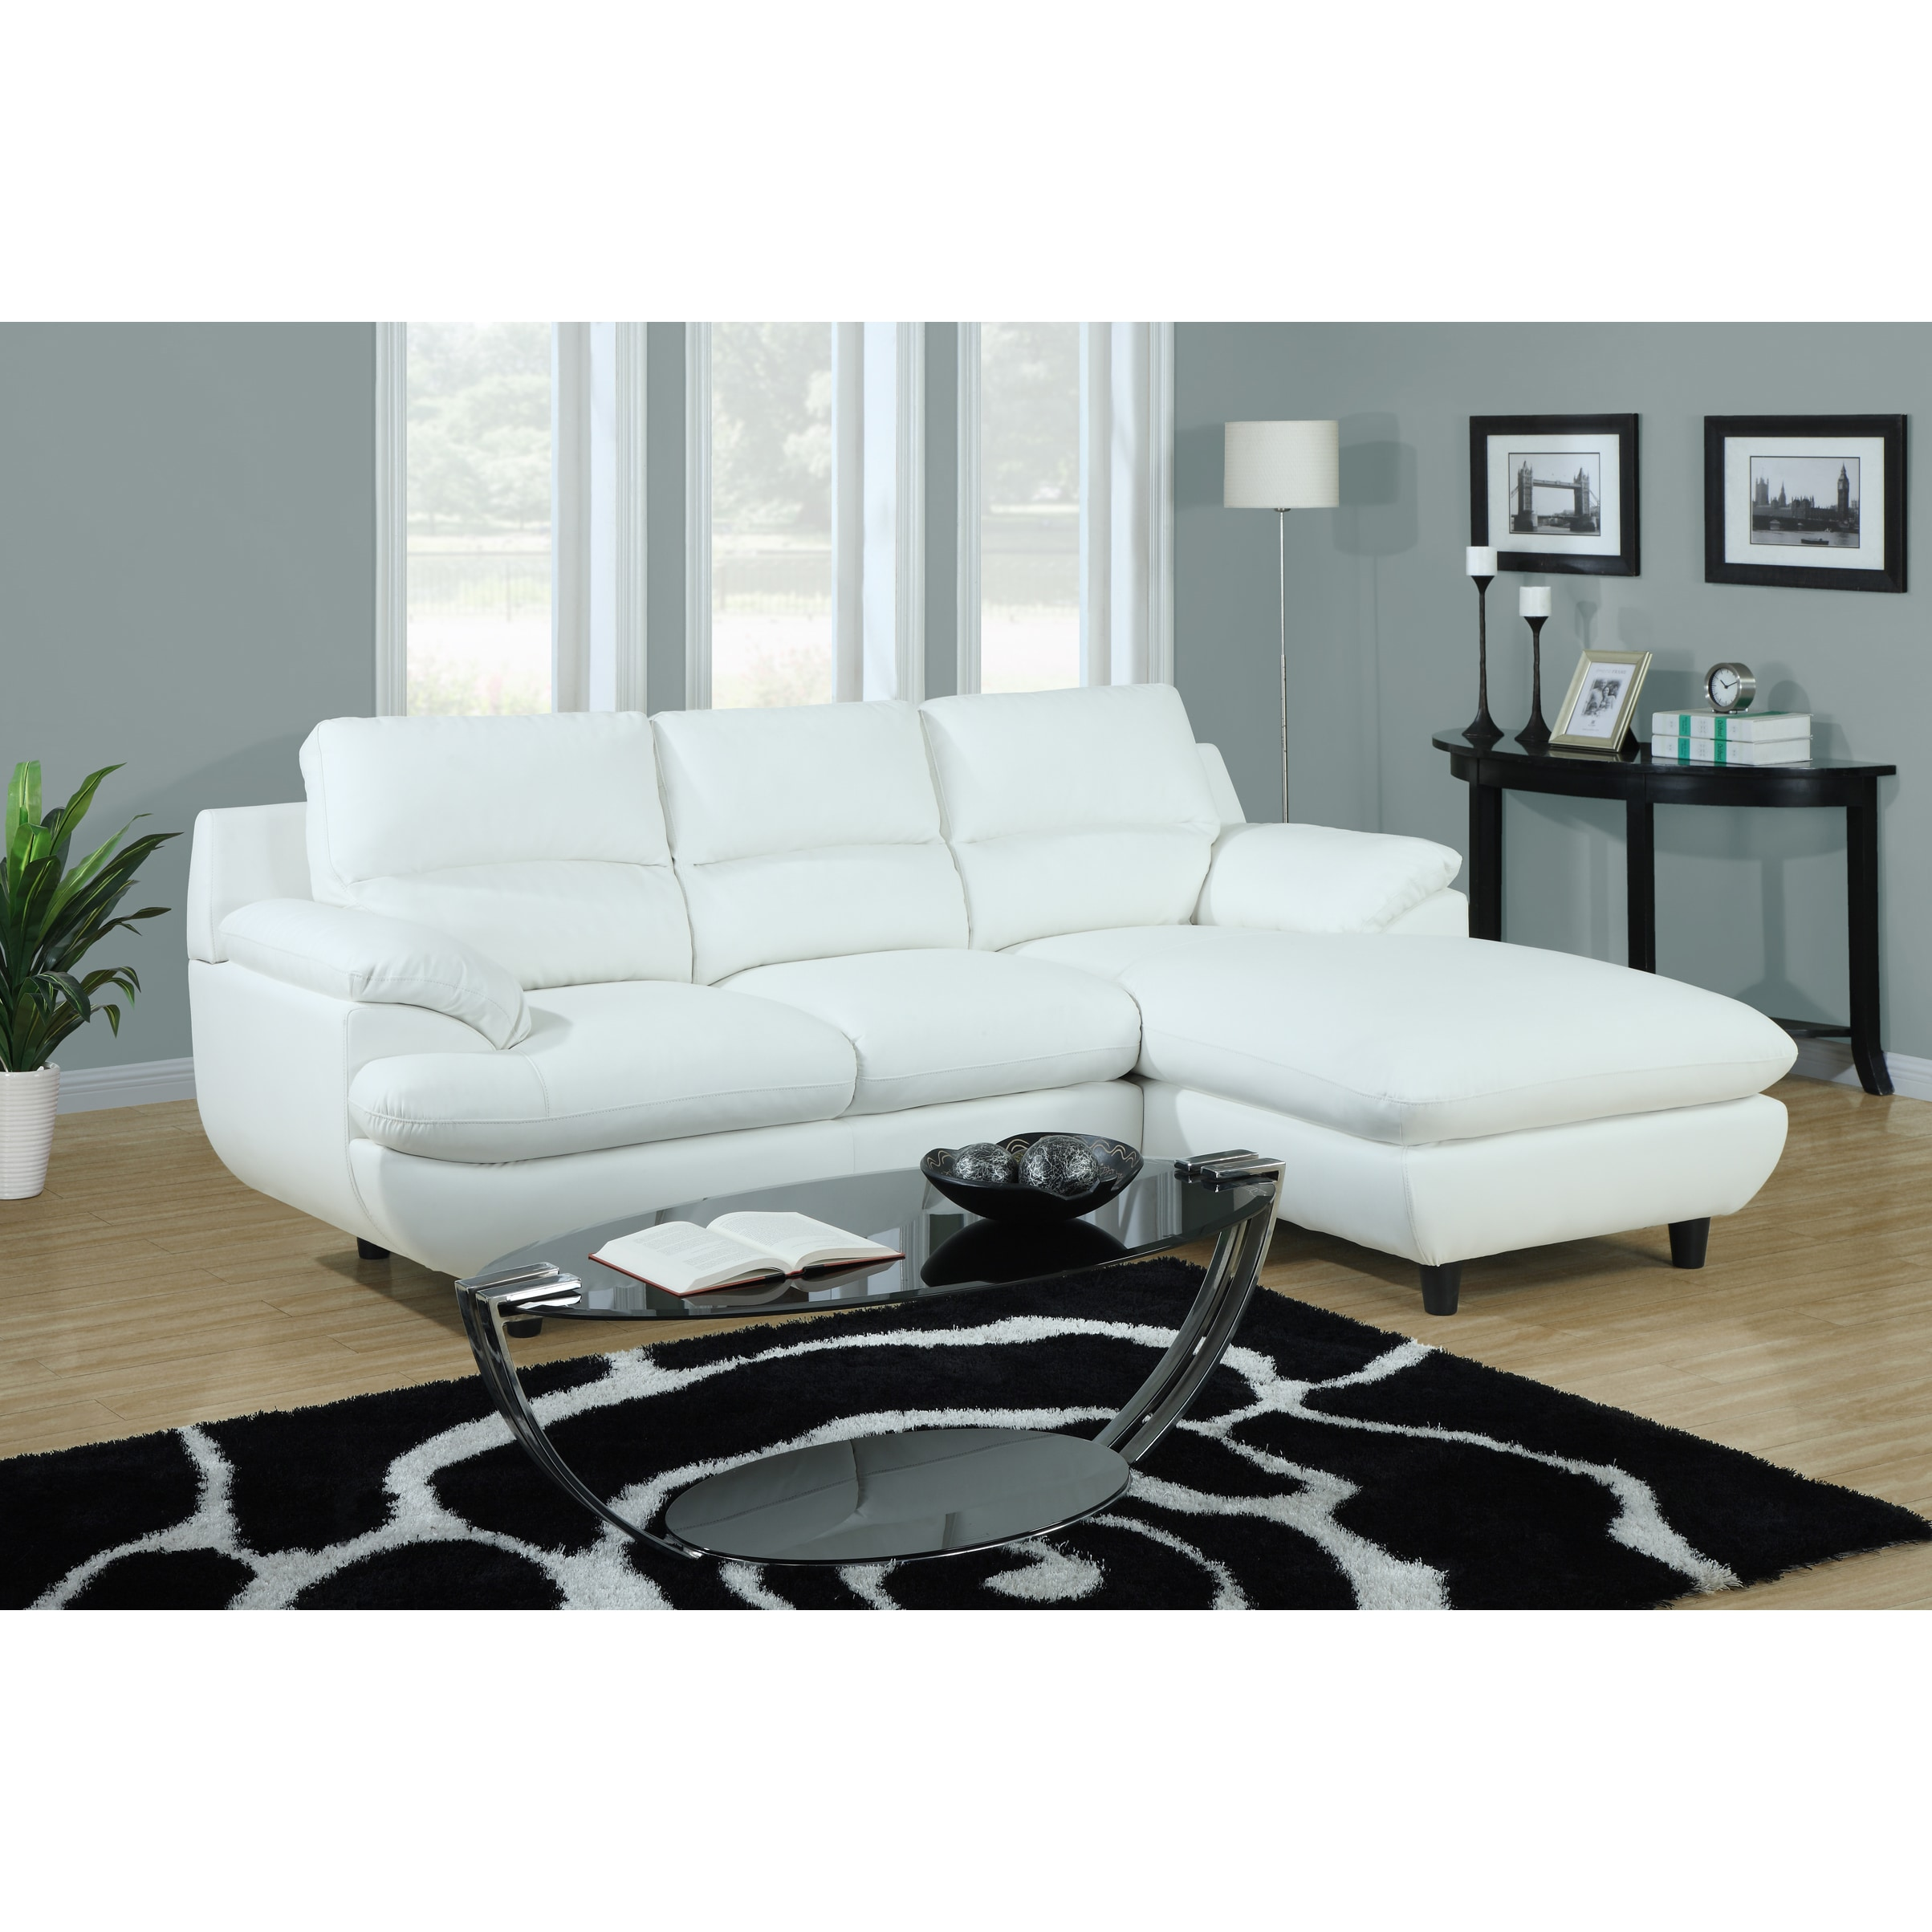 tribecca home eland black bonded leather sofa set how to make covers stay in place white sectional 14349159 overstock